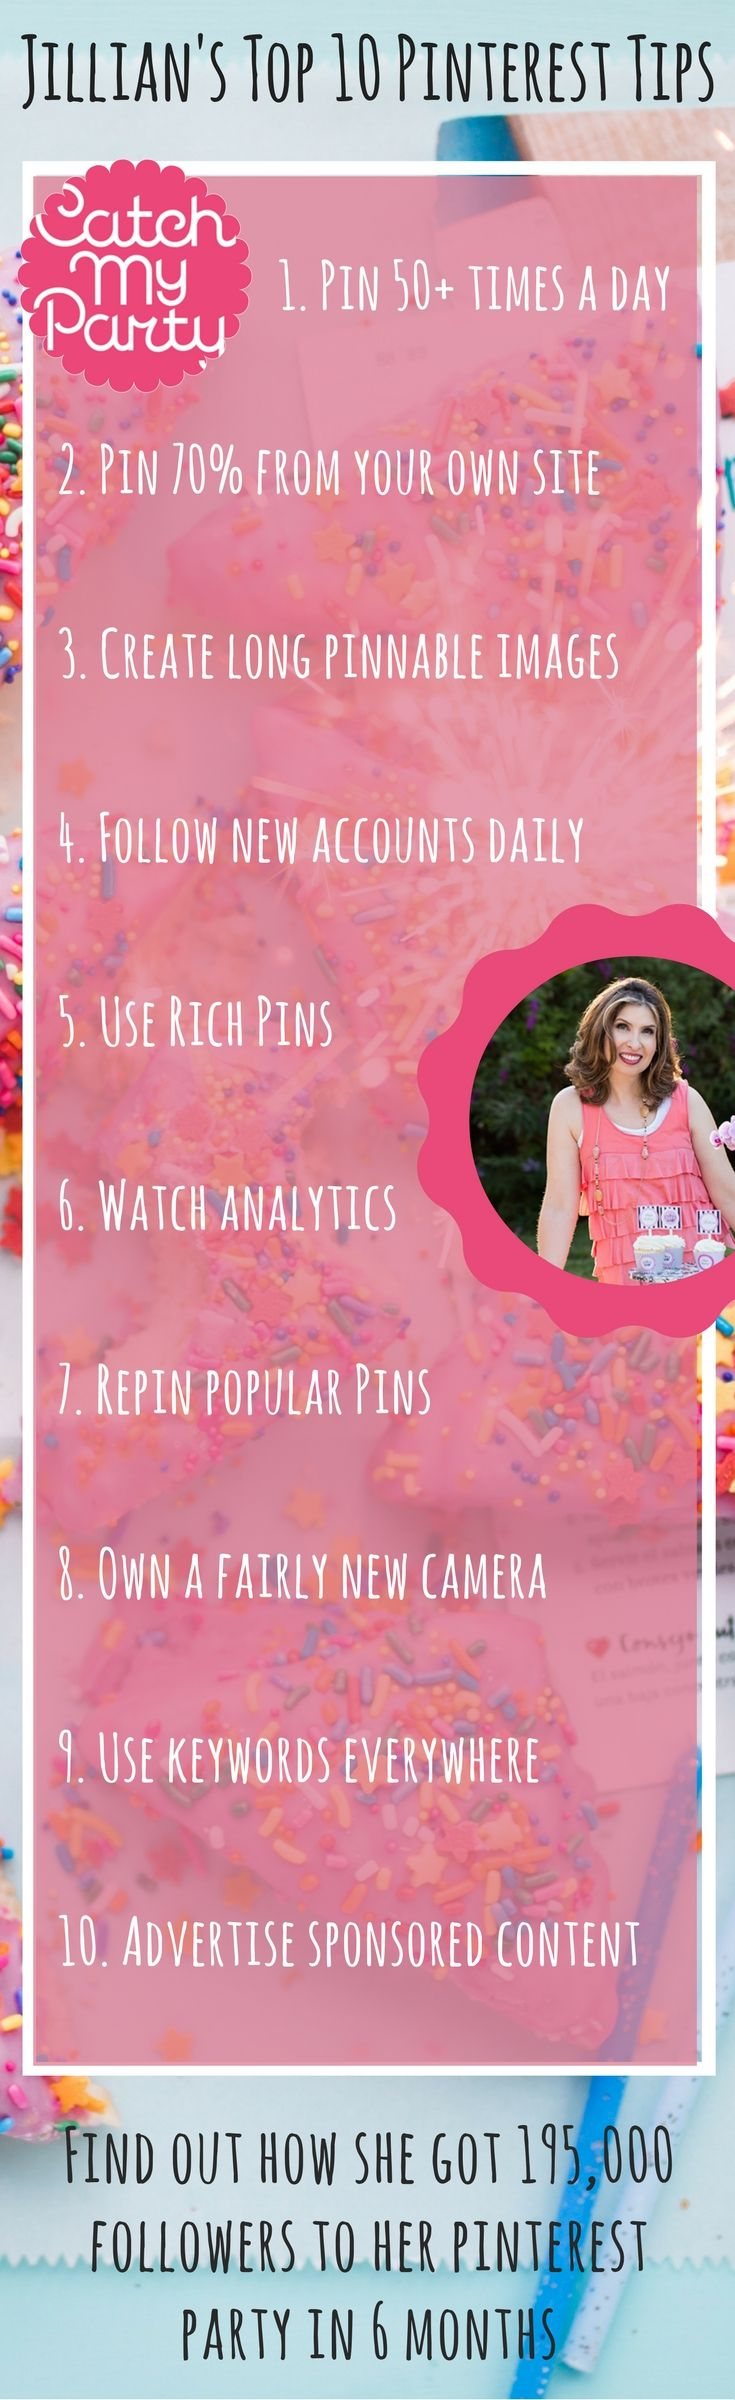 How I Attracted 195,000 More Followers to My Pinterest Party in 6 Months